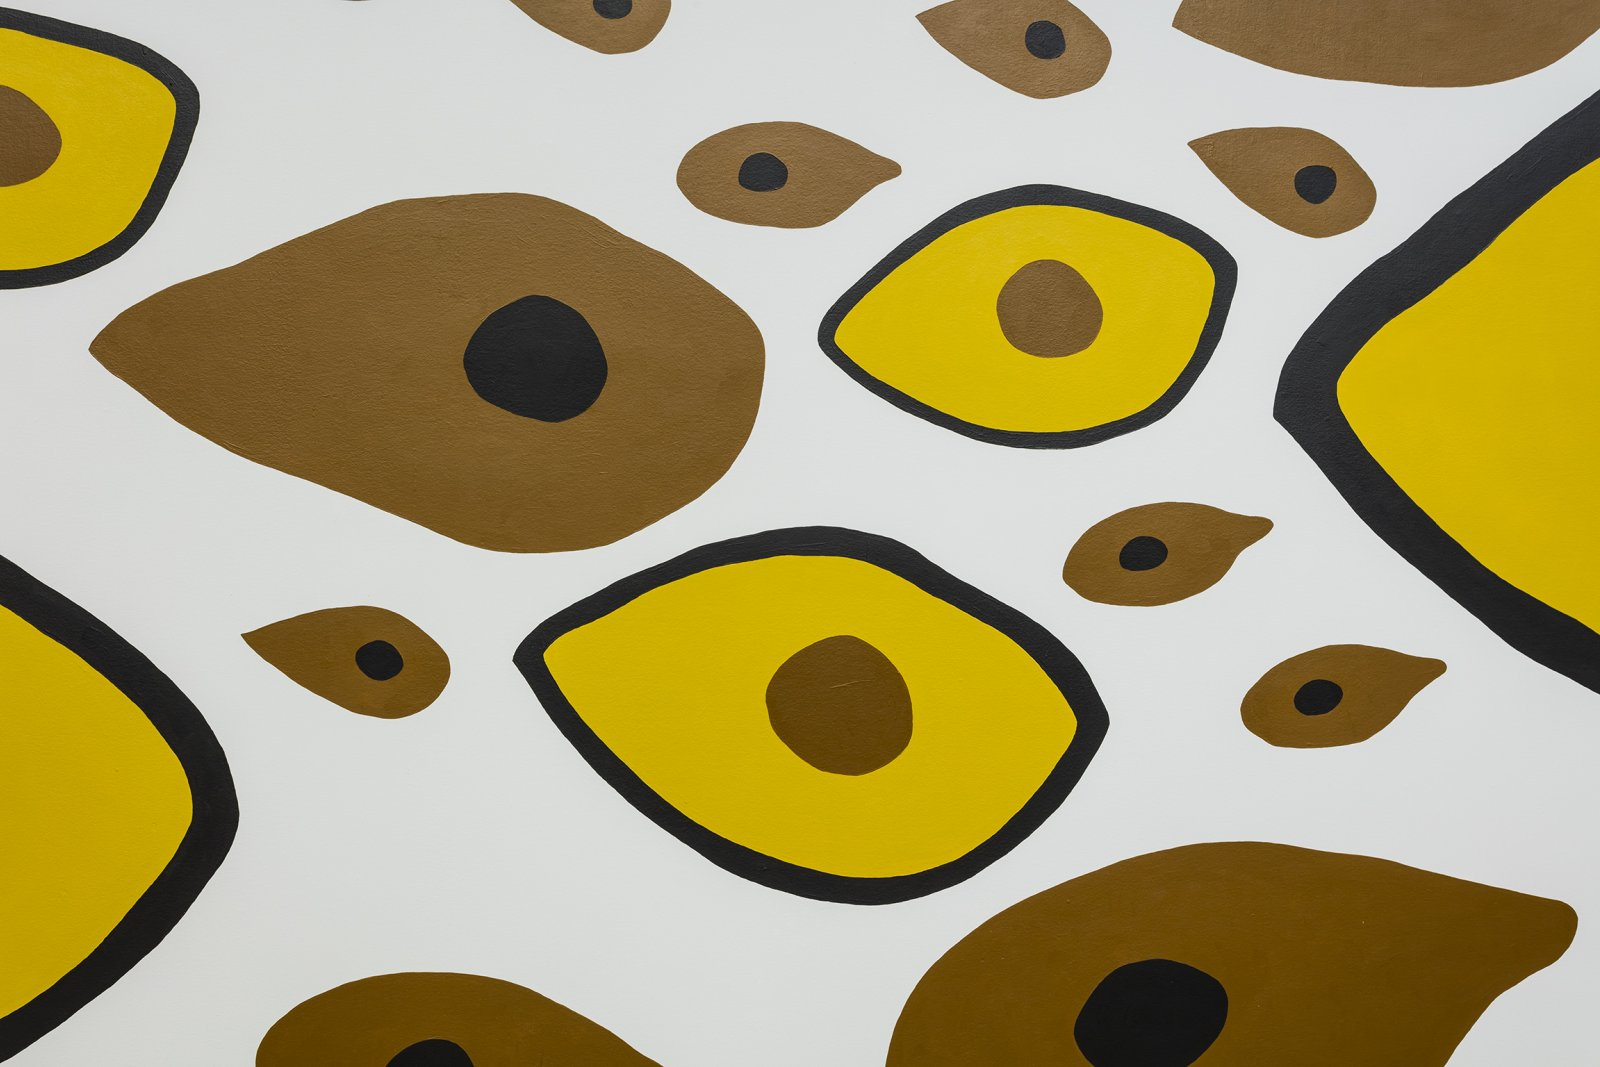 Duane Linklater,Earth Mother Hair, Indian Hair, and Earth Mother Eyes, Indian Eyes, Animal Eyes(detail),2017, paint on wall, dimensions variable